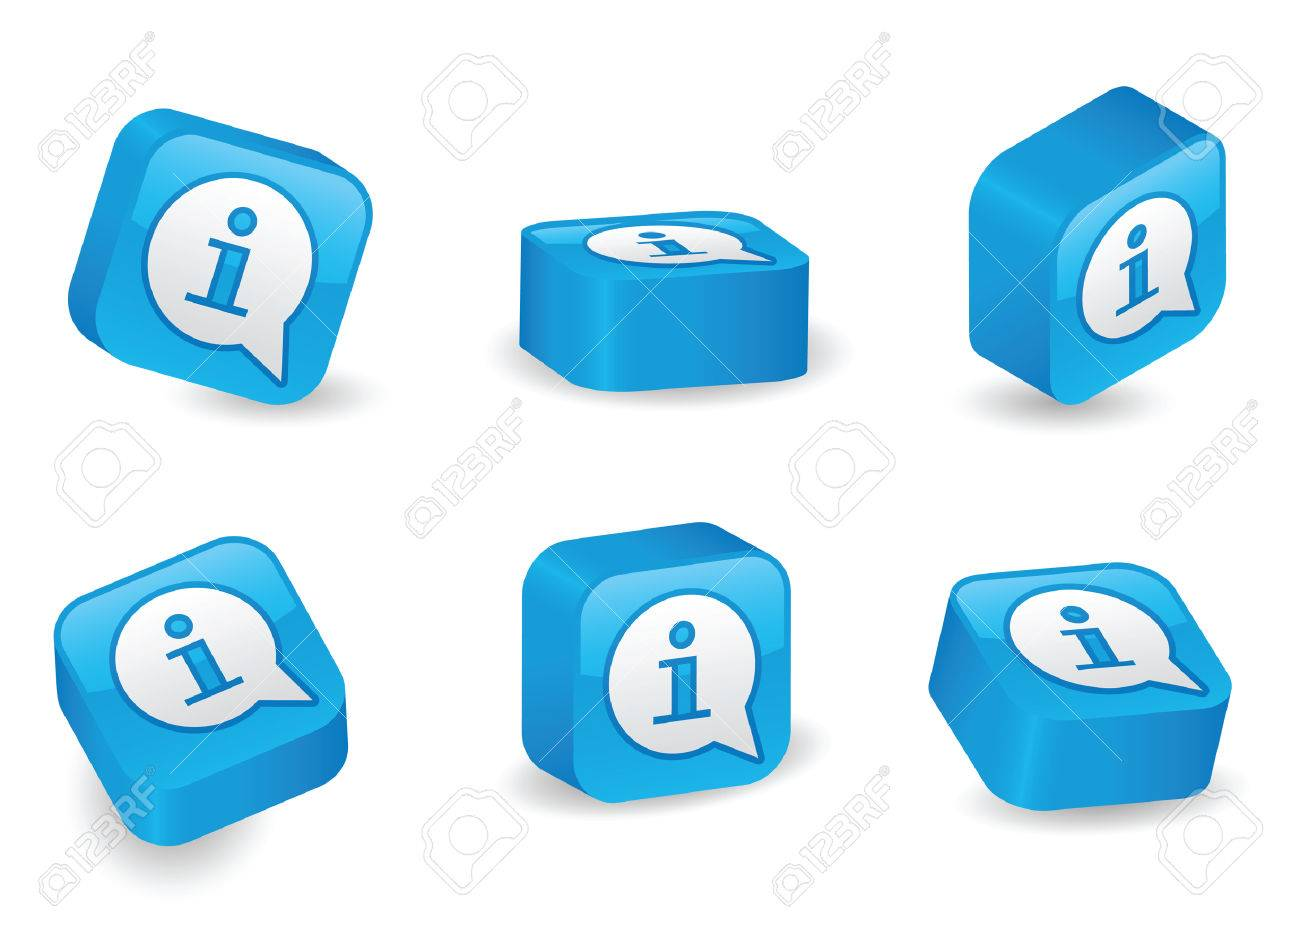 Info (i) icon on vibrant, glossy, three-dimensional blocks in various positions Stock Vector - 5628493